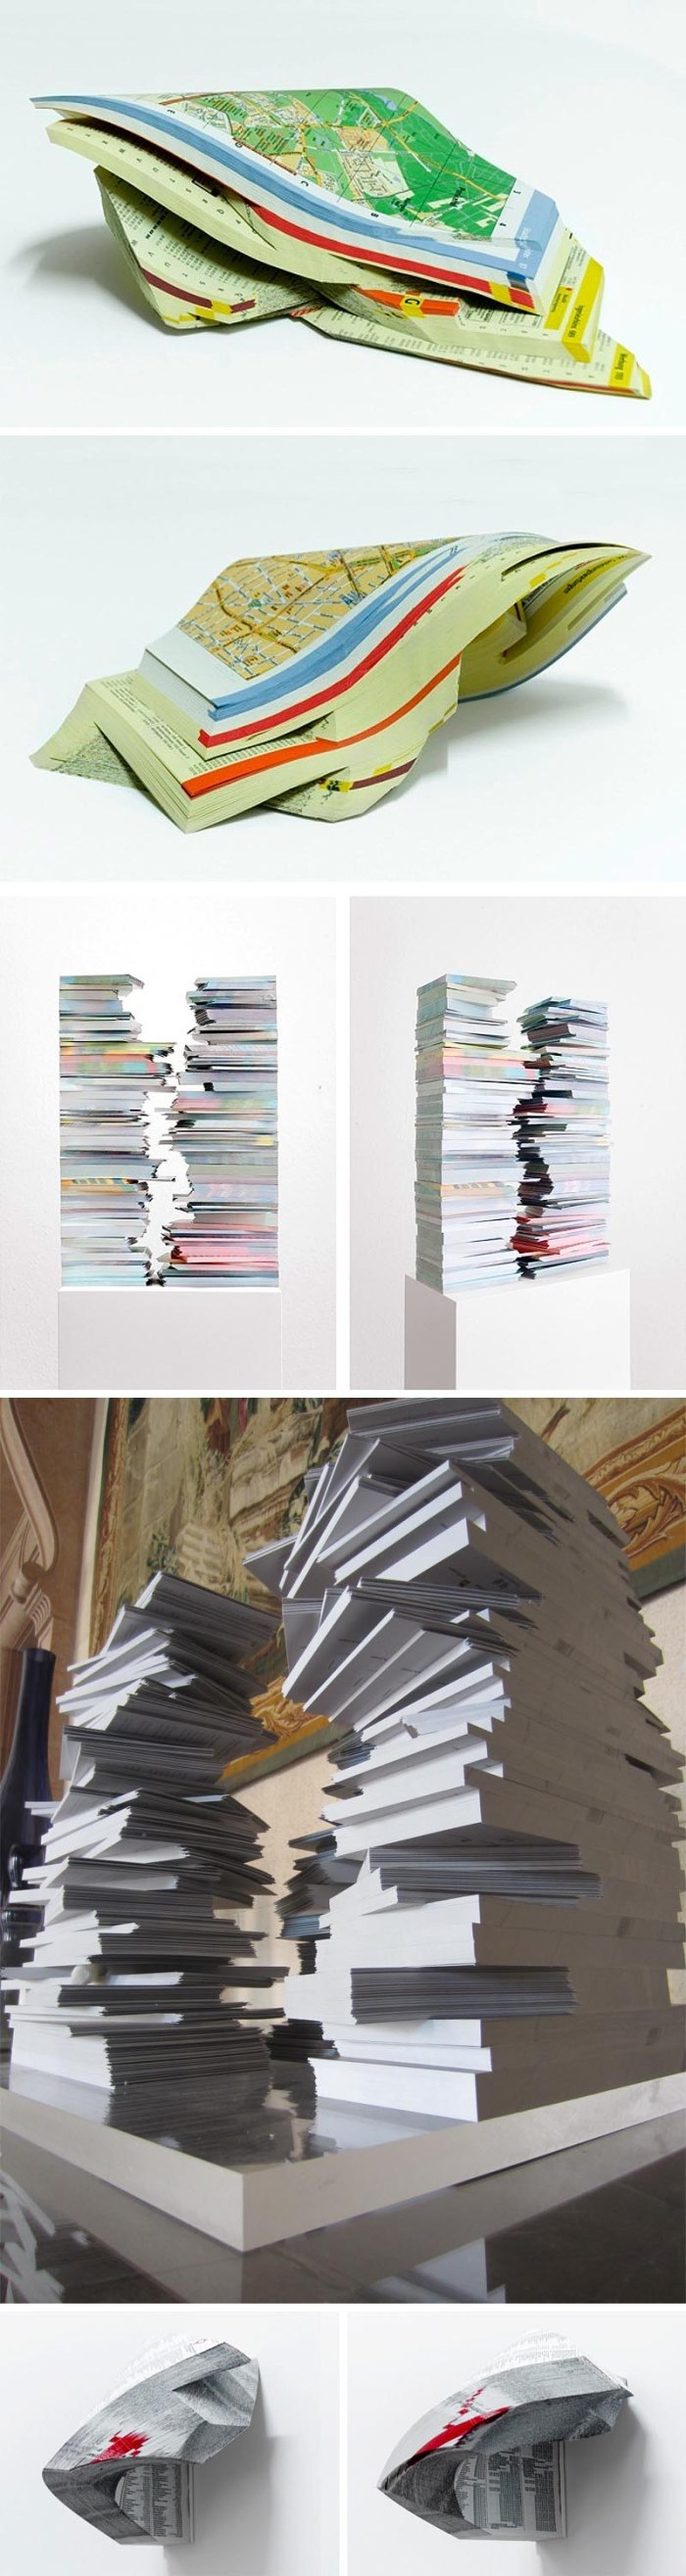 Phonebook sculptures, Gemis Luciani, Piece of Space